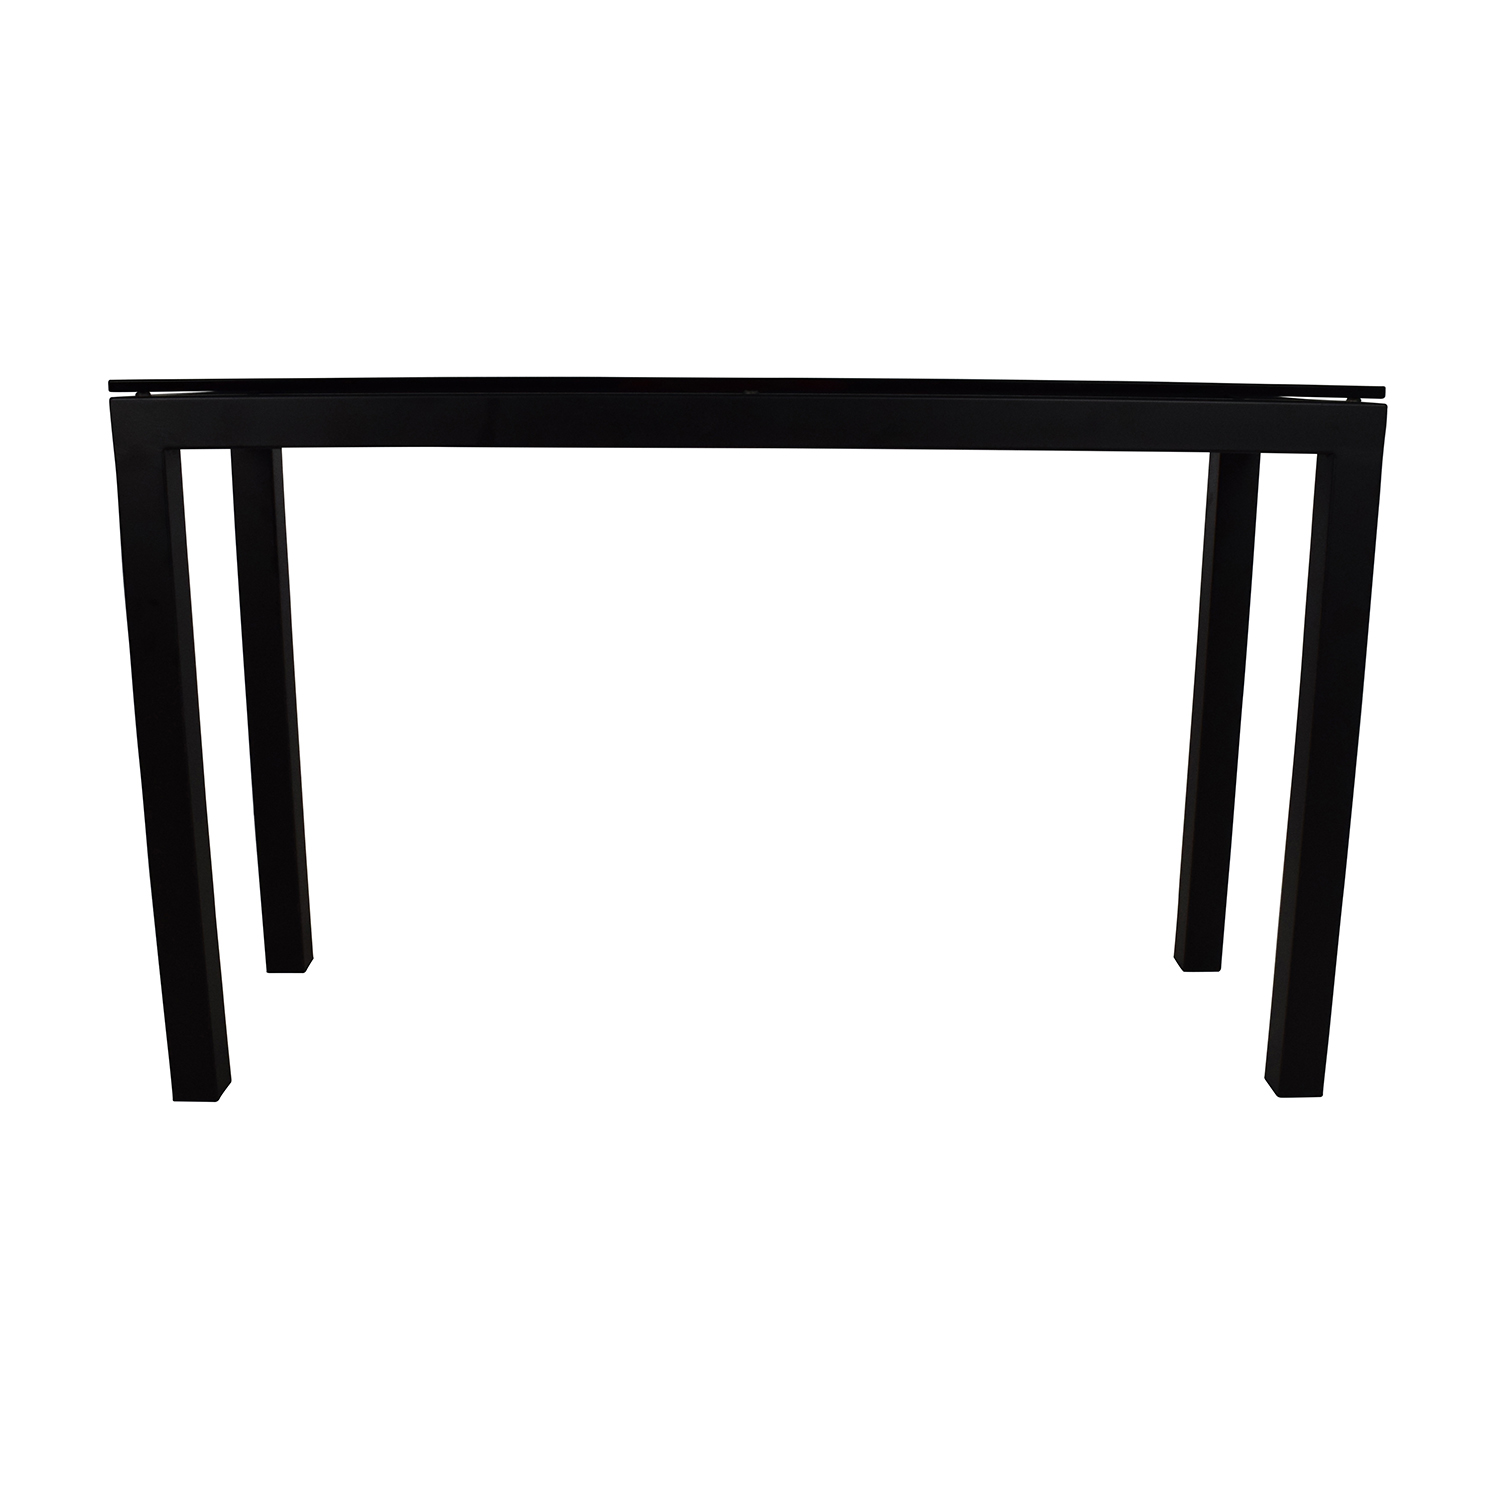 Crate and Barrel Crate & Barrel Parsons Console Table with Clear Glass Top for sale